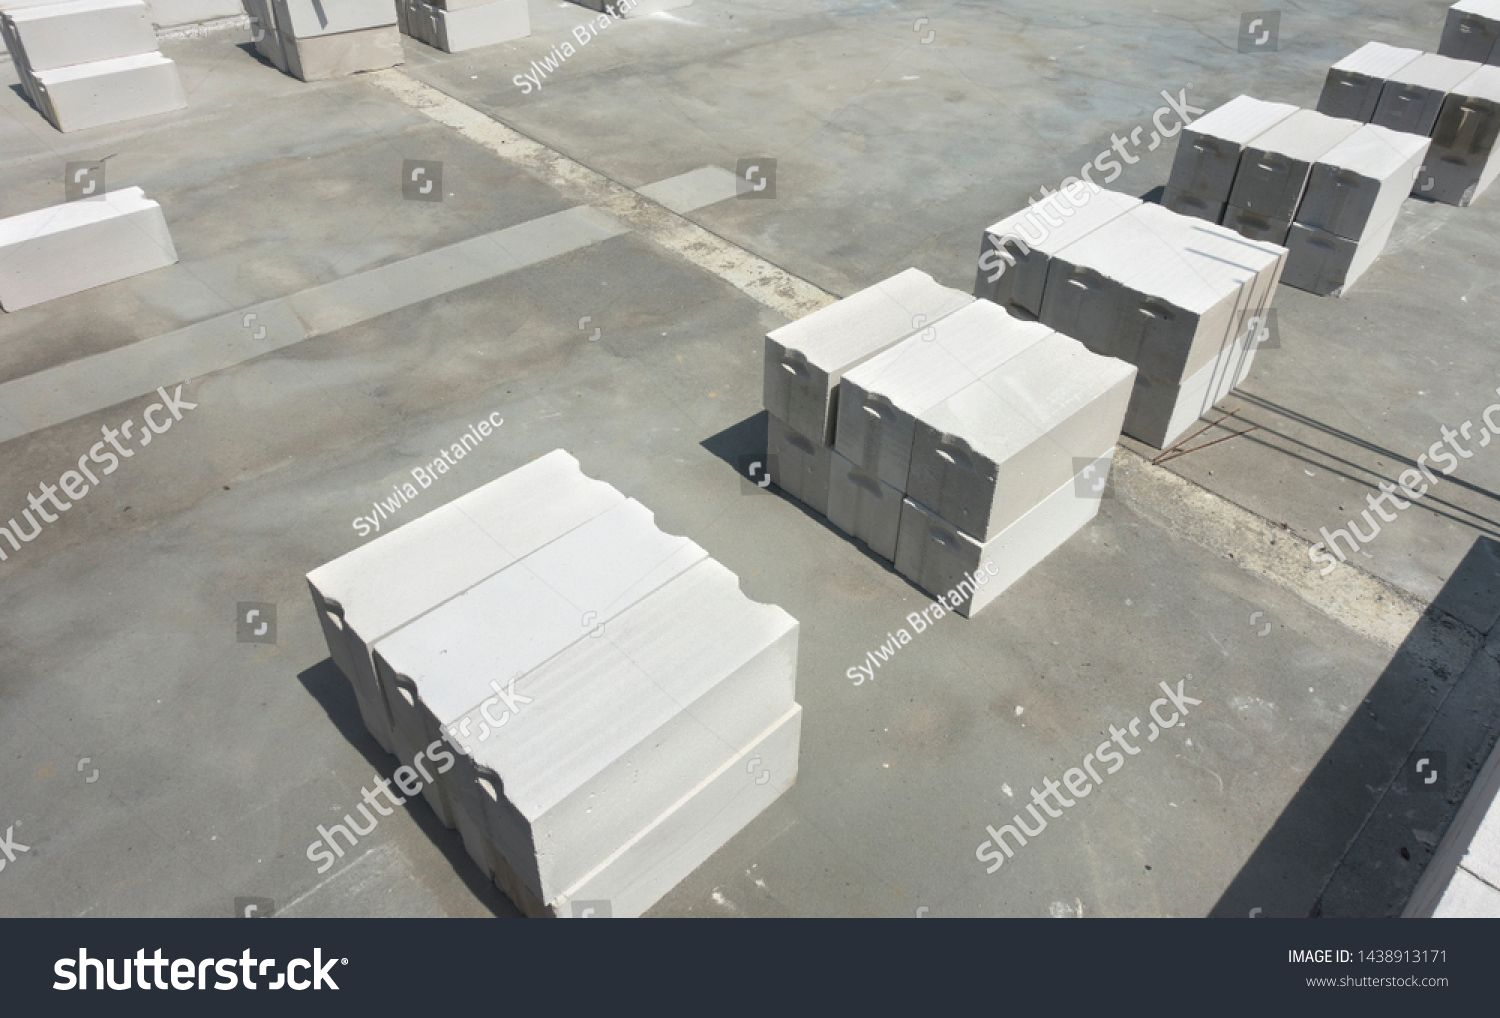 White Foamed Lightweight Concrete Aerated Concrete Block Laying In Stacks On The Concrete Floor Inside Under Constru In 2020 Concrete Blocks Concrete Floors Concrete